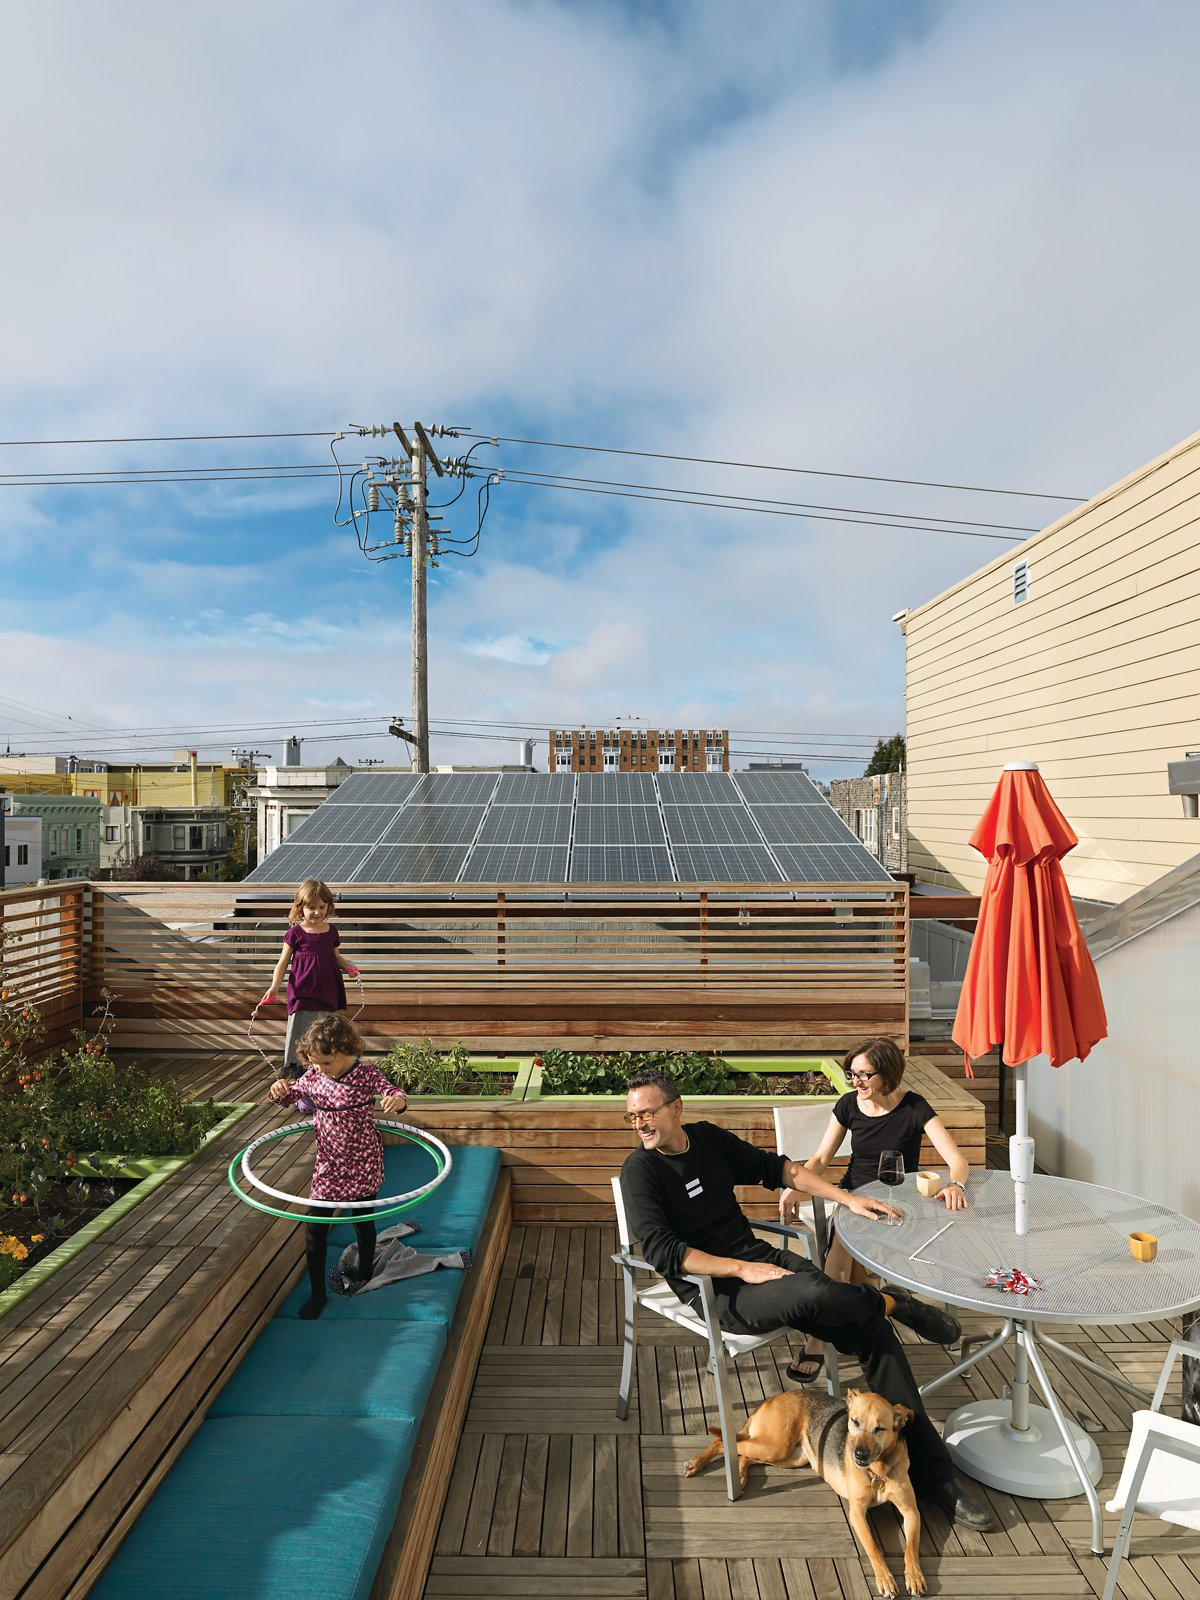 The roof became the perfect location for their vegetable garden, as well as benches and a recreation space crowned by a hot tub powered by a four-kilowatt solar array. Tagged: Outdoor, Rooftop, Wood Patio, Porch, Deck, Vegetables, Horizontal Fences, Wall, Gardens, Decking Patio, Porch, Deck, and Wood Fences, Wall.  Private Rooftop Sanctuaries  by Zachary Edelson from Just Redo It